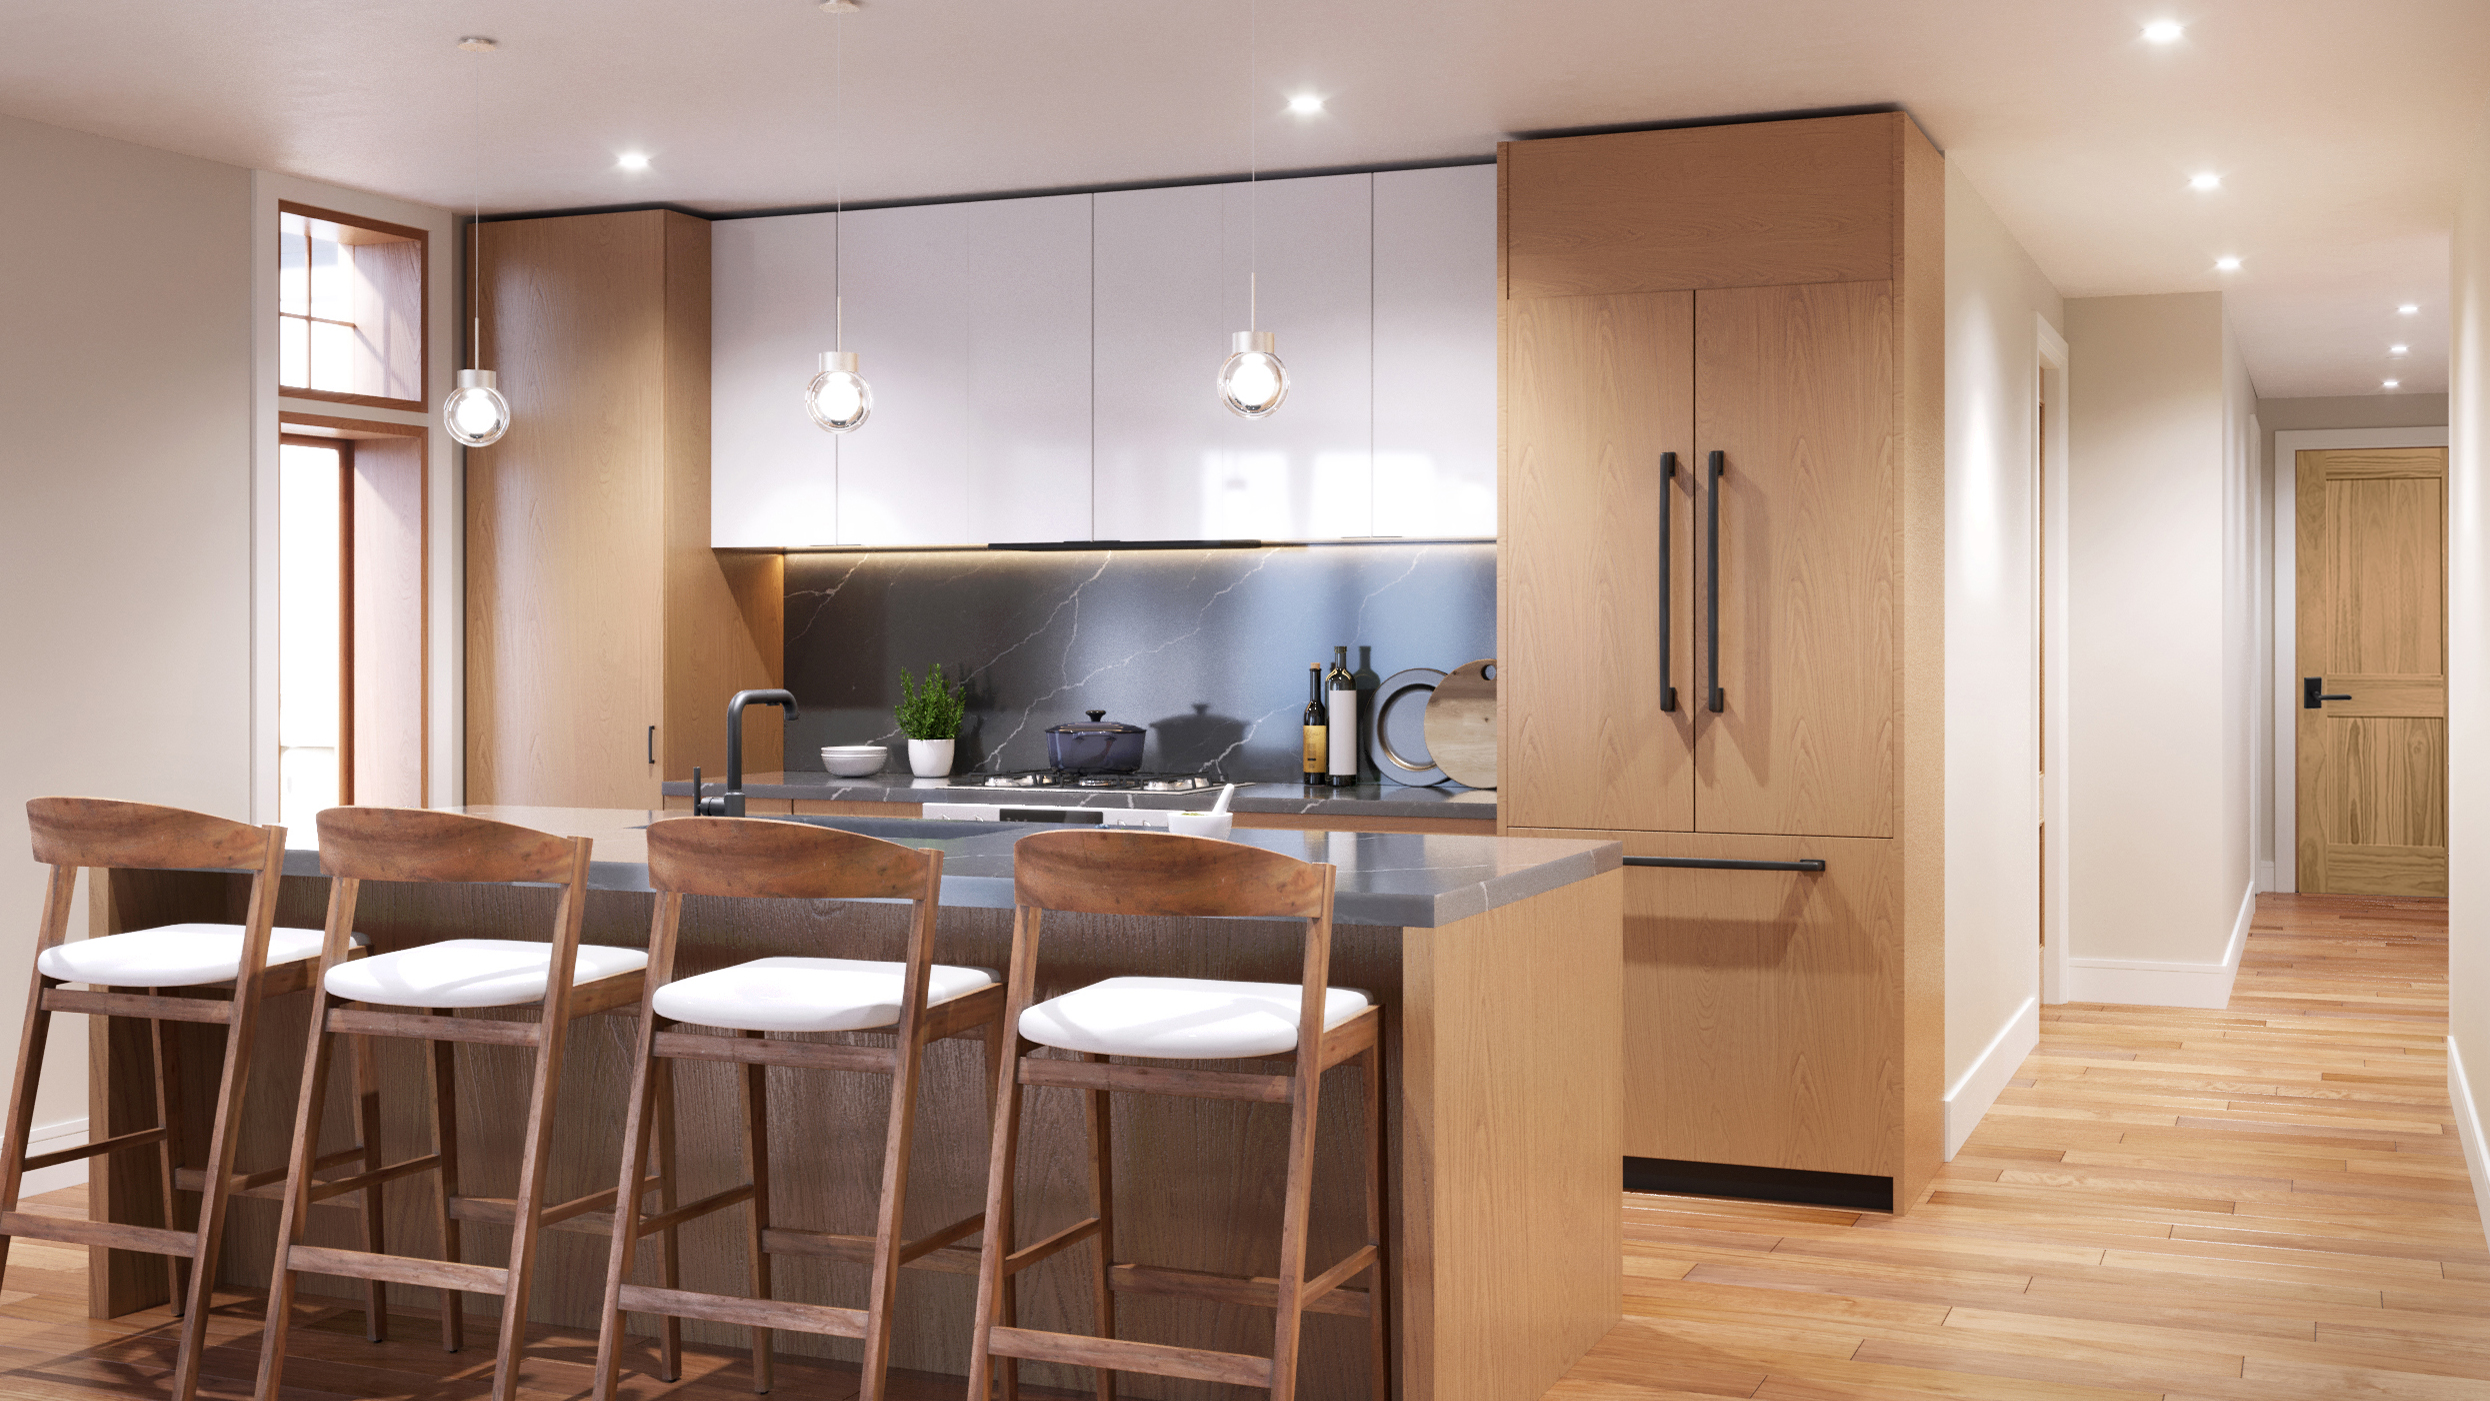 https://s3.amazonaws.com/propertybase-clients/00D6g000007OY6LEAW/a0O6g000004OFgD/mberw3ove/Kitchen%20OPT%202.jpg